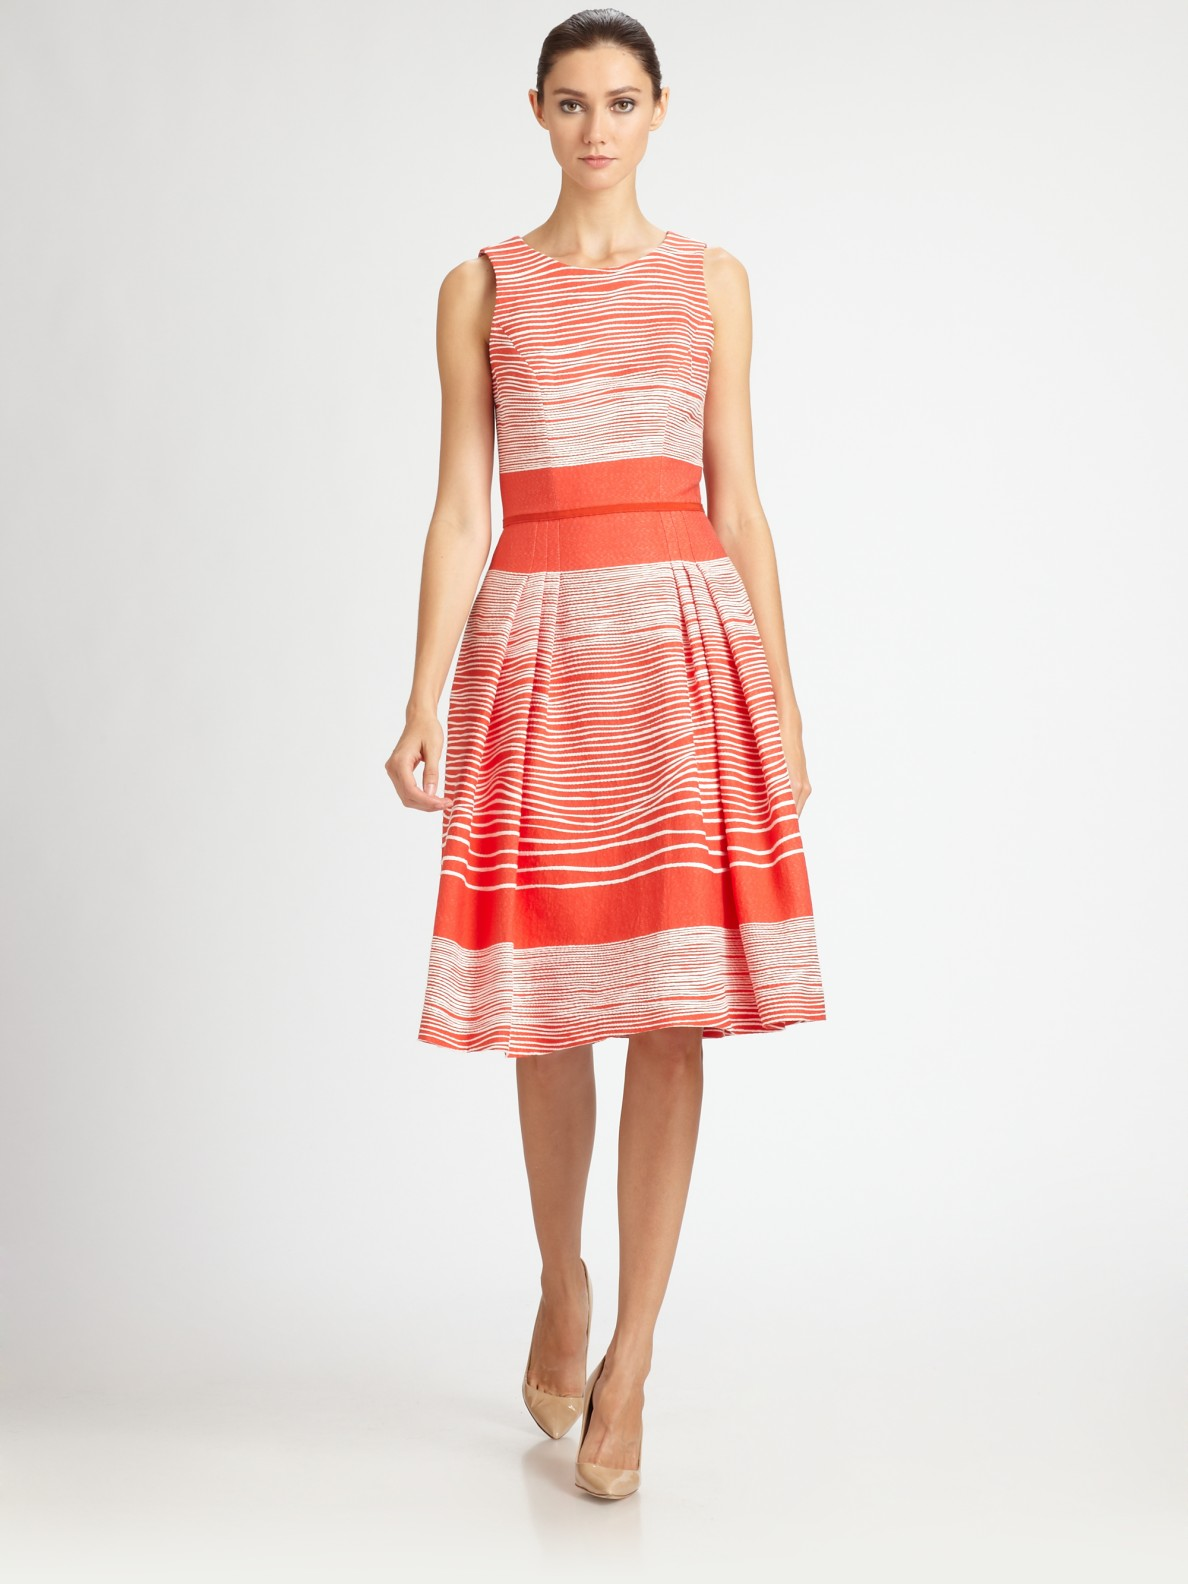 Lela Rose Dresses